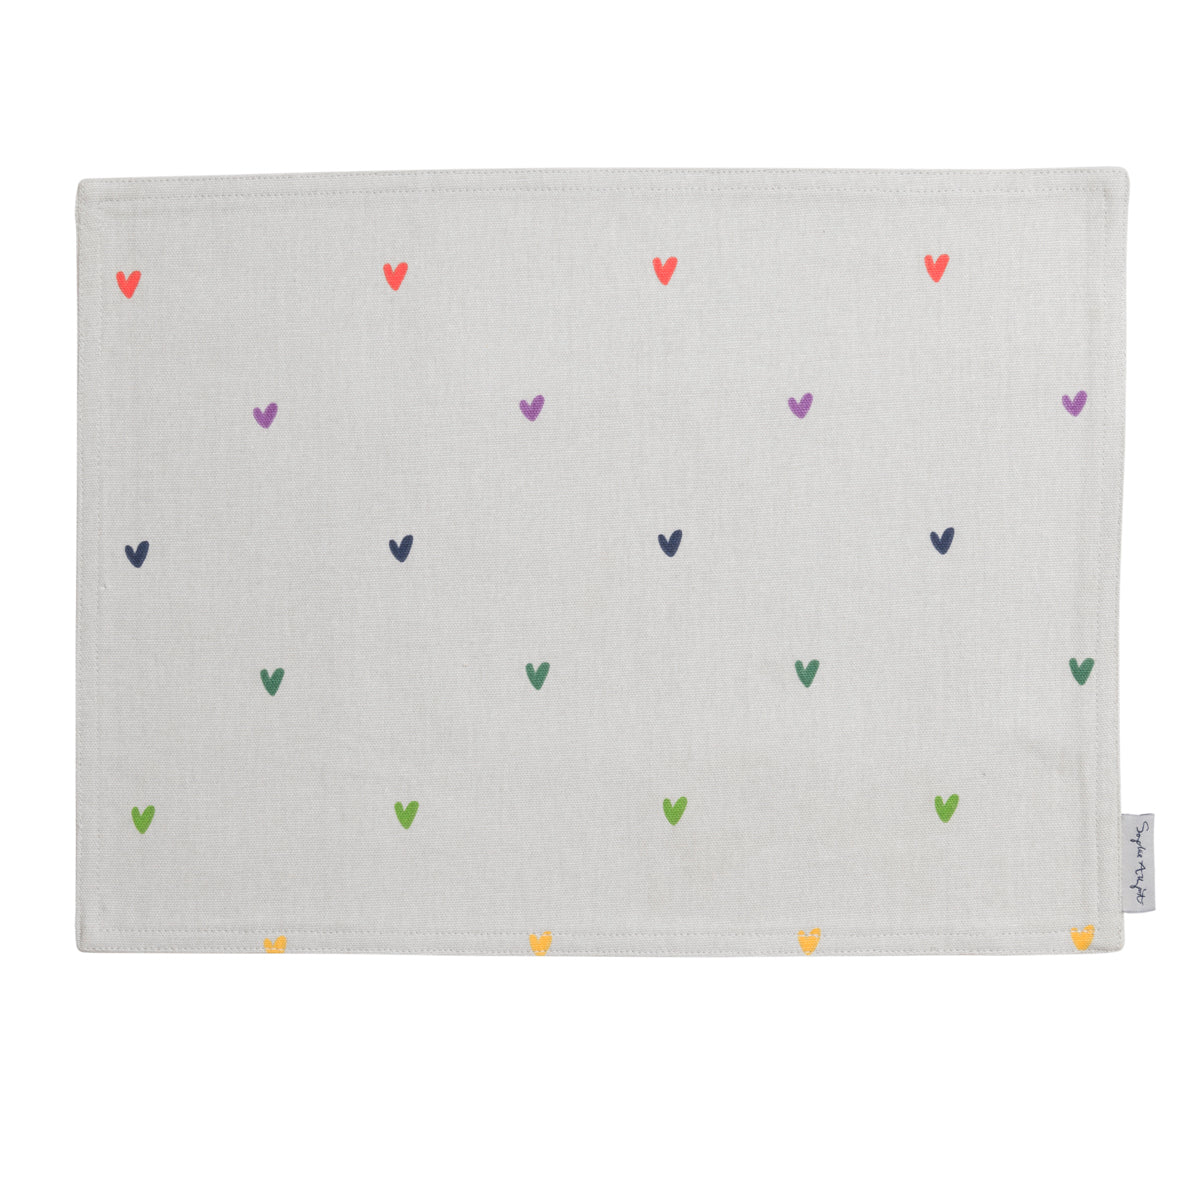 Multicoloured Hearts Fabric Placemat by Sophie Allport